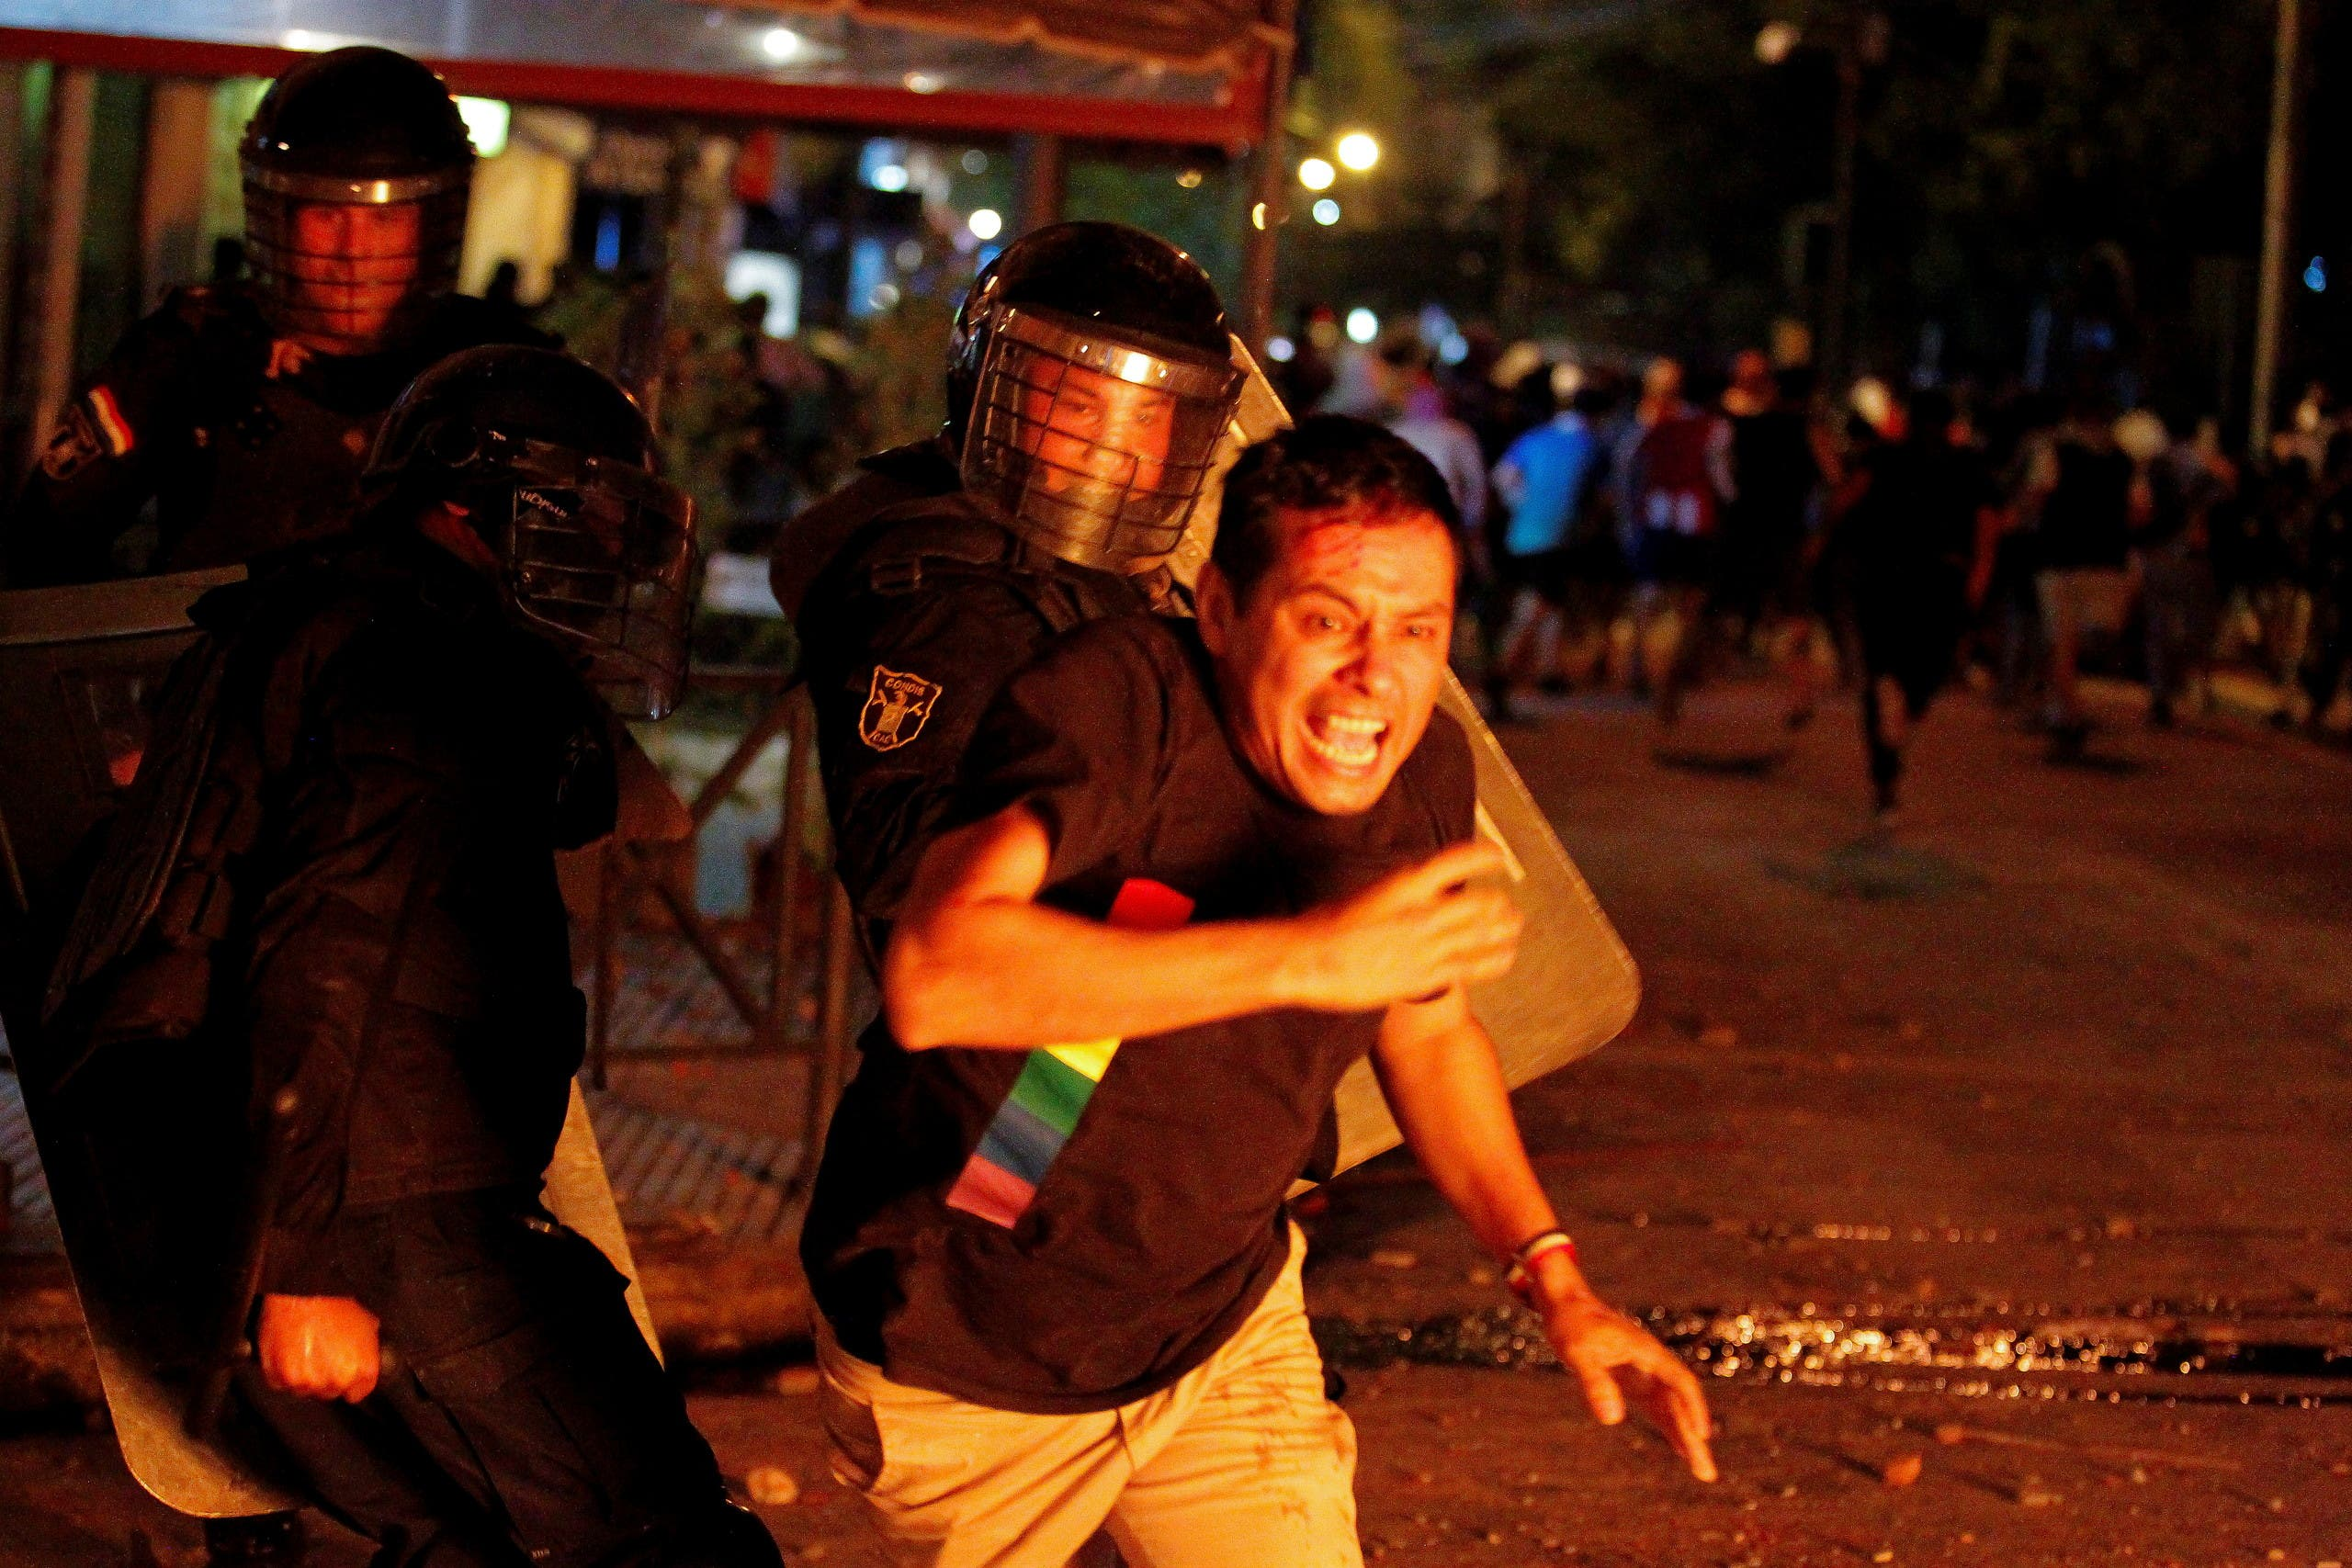 Riot police officers clash with a demonstrator during a protest against President Mario Abdo Benitez's health policies and the lack of coronavirus disease (COVID-19) vaccines in Asuncion, Paraguay March 5, 2021. (Reuters)